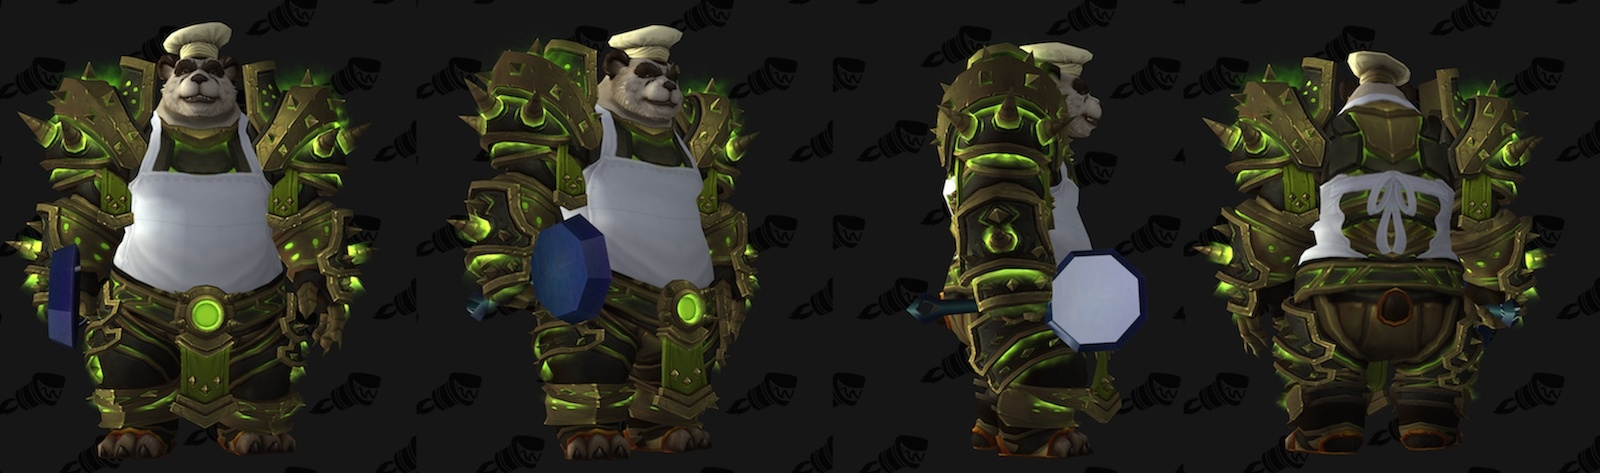 Build 24117 PTR Preview - Nomi Micro-Holiday Event, Legion